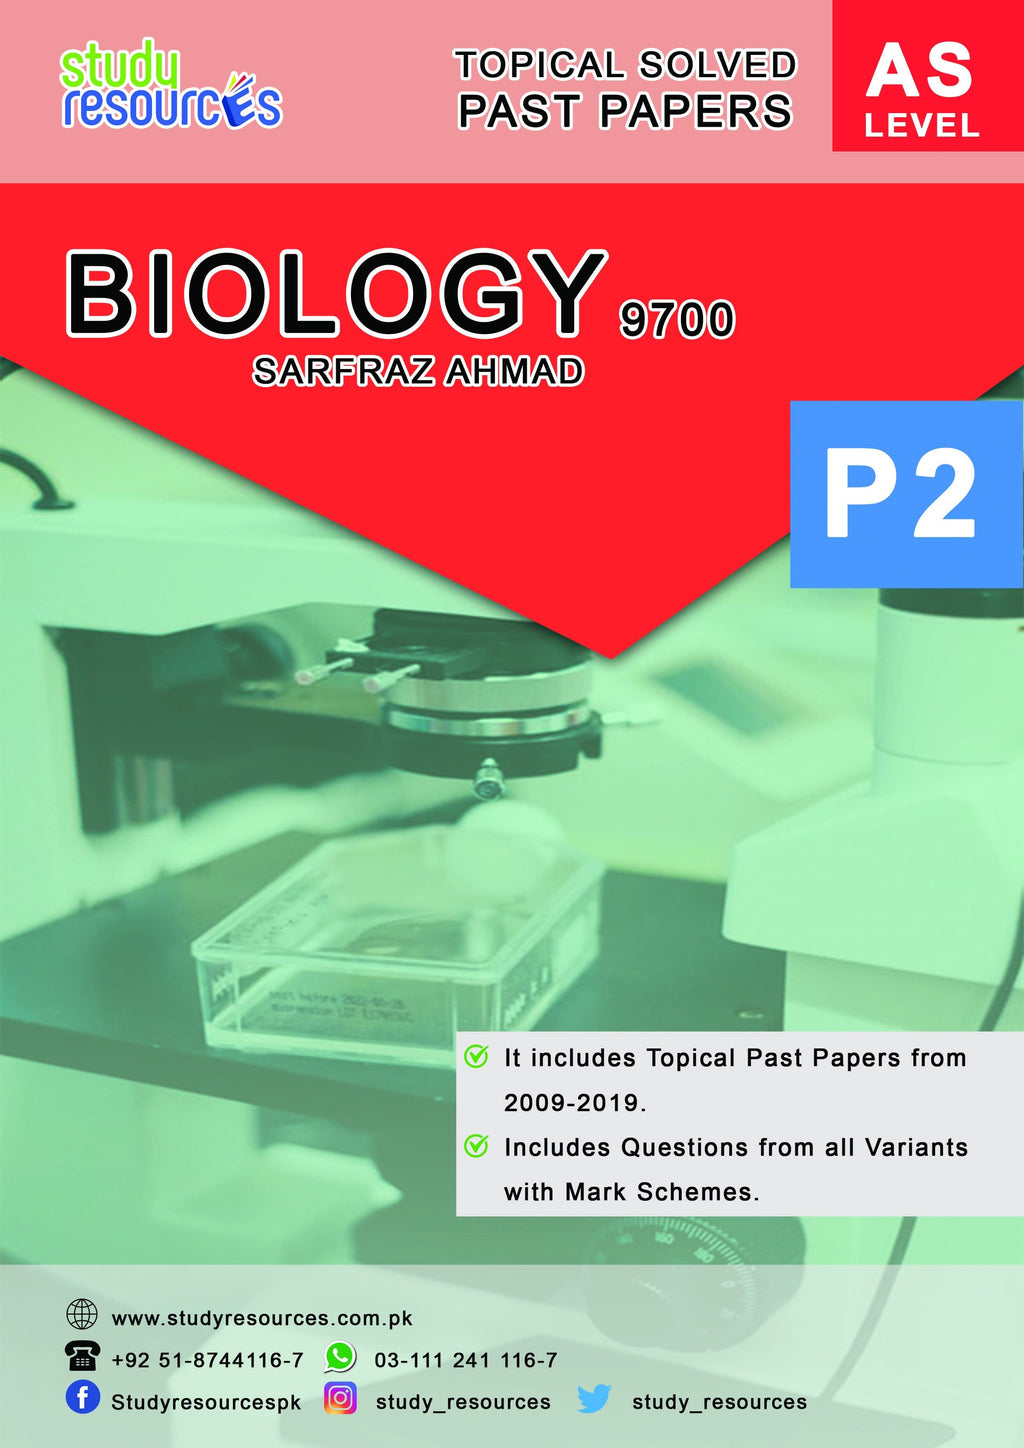 Cambridge AS-Level Biology (9700) Topical Paper-2 by Sir. Sarfraz Ahmad